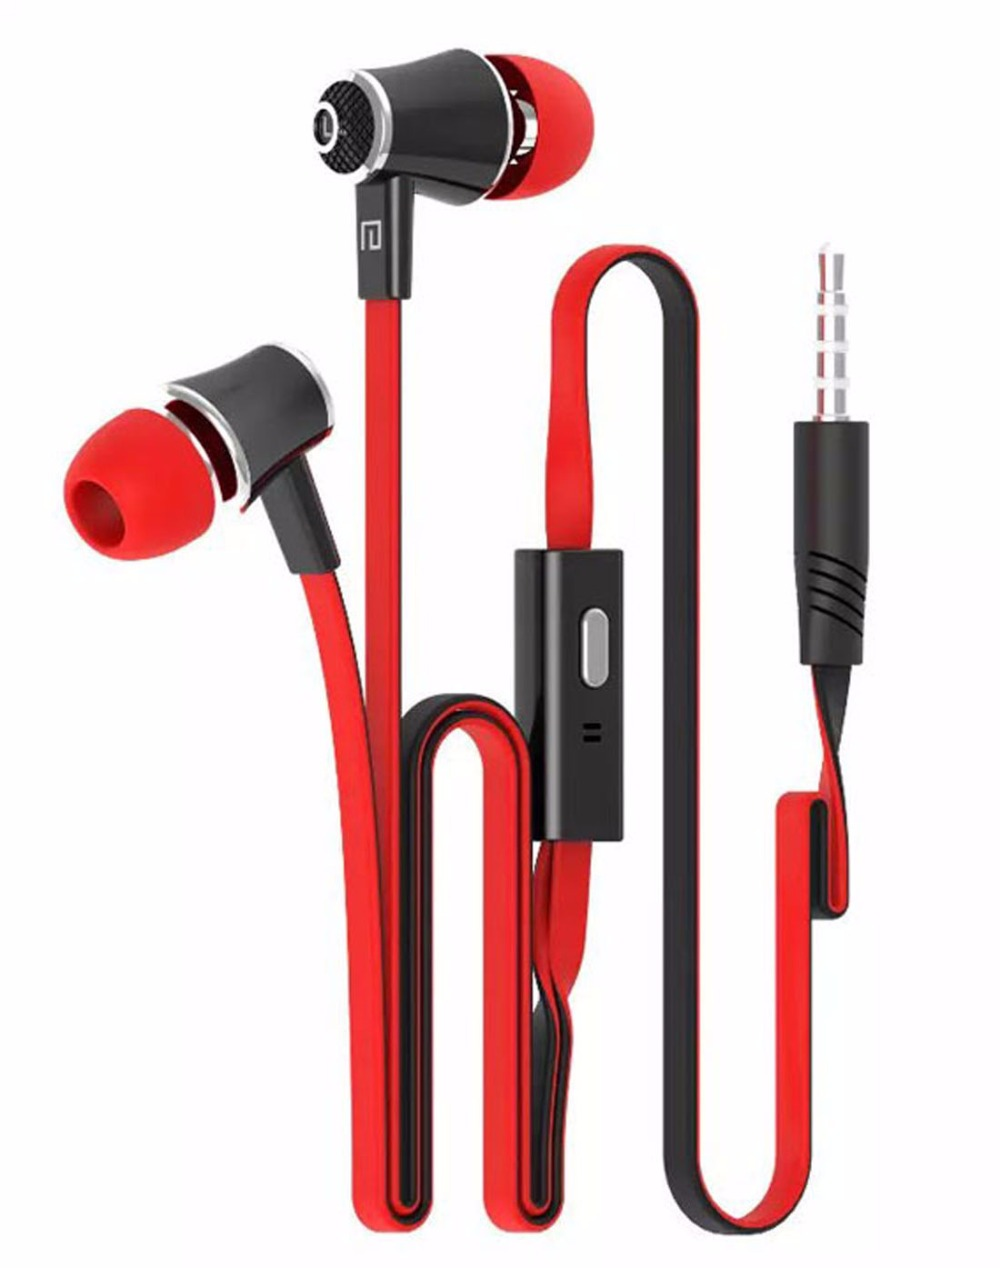 Original Langsdom 3.5mm Stereo Bass earphone Headphone Headset With Mic for your Phone iphone 5 6 Samsung HTC Sony MP3 PC(China (Mainland))